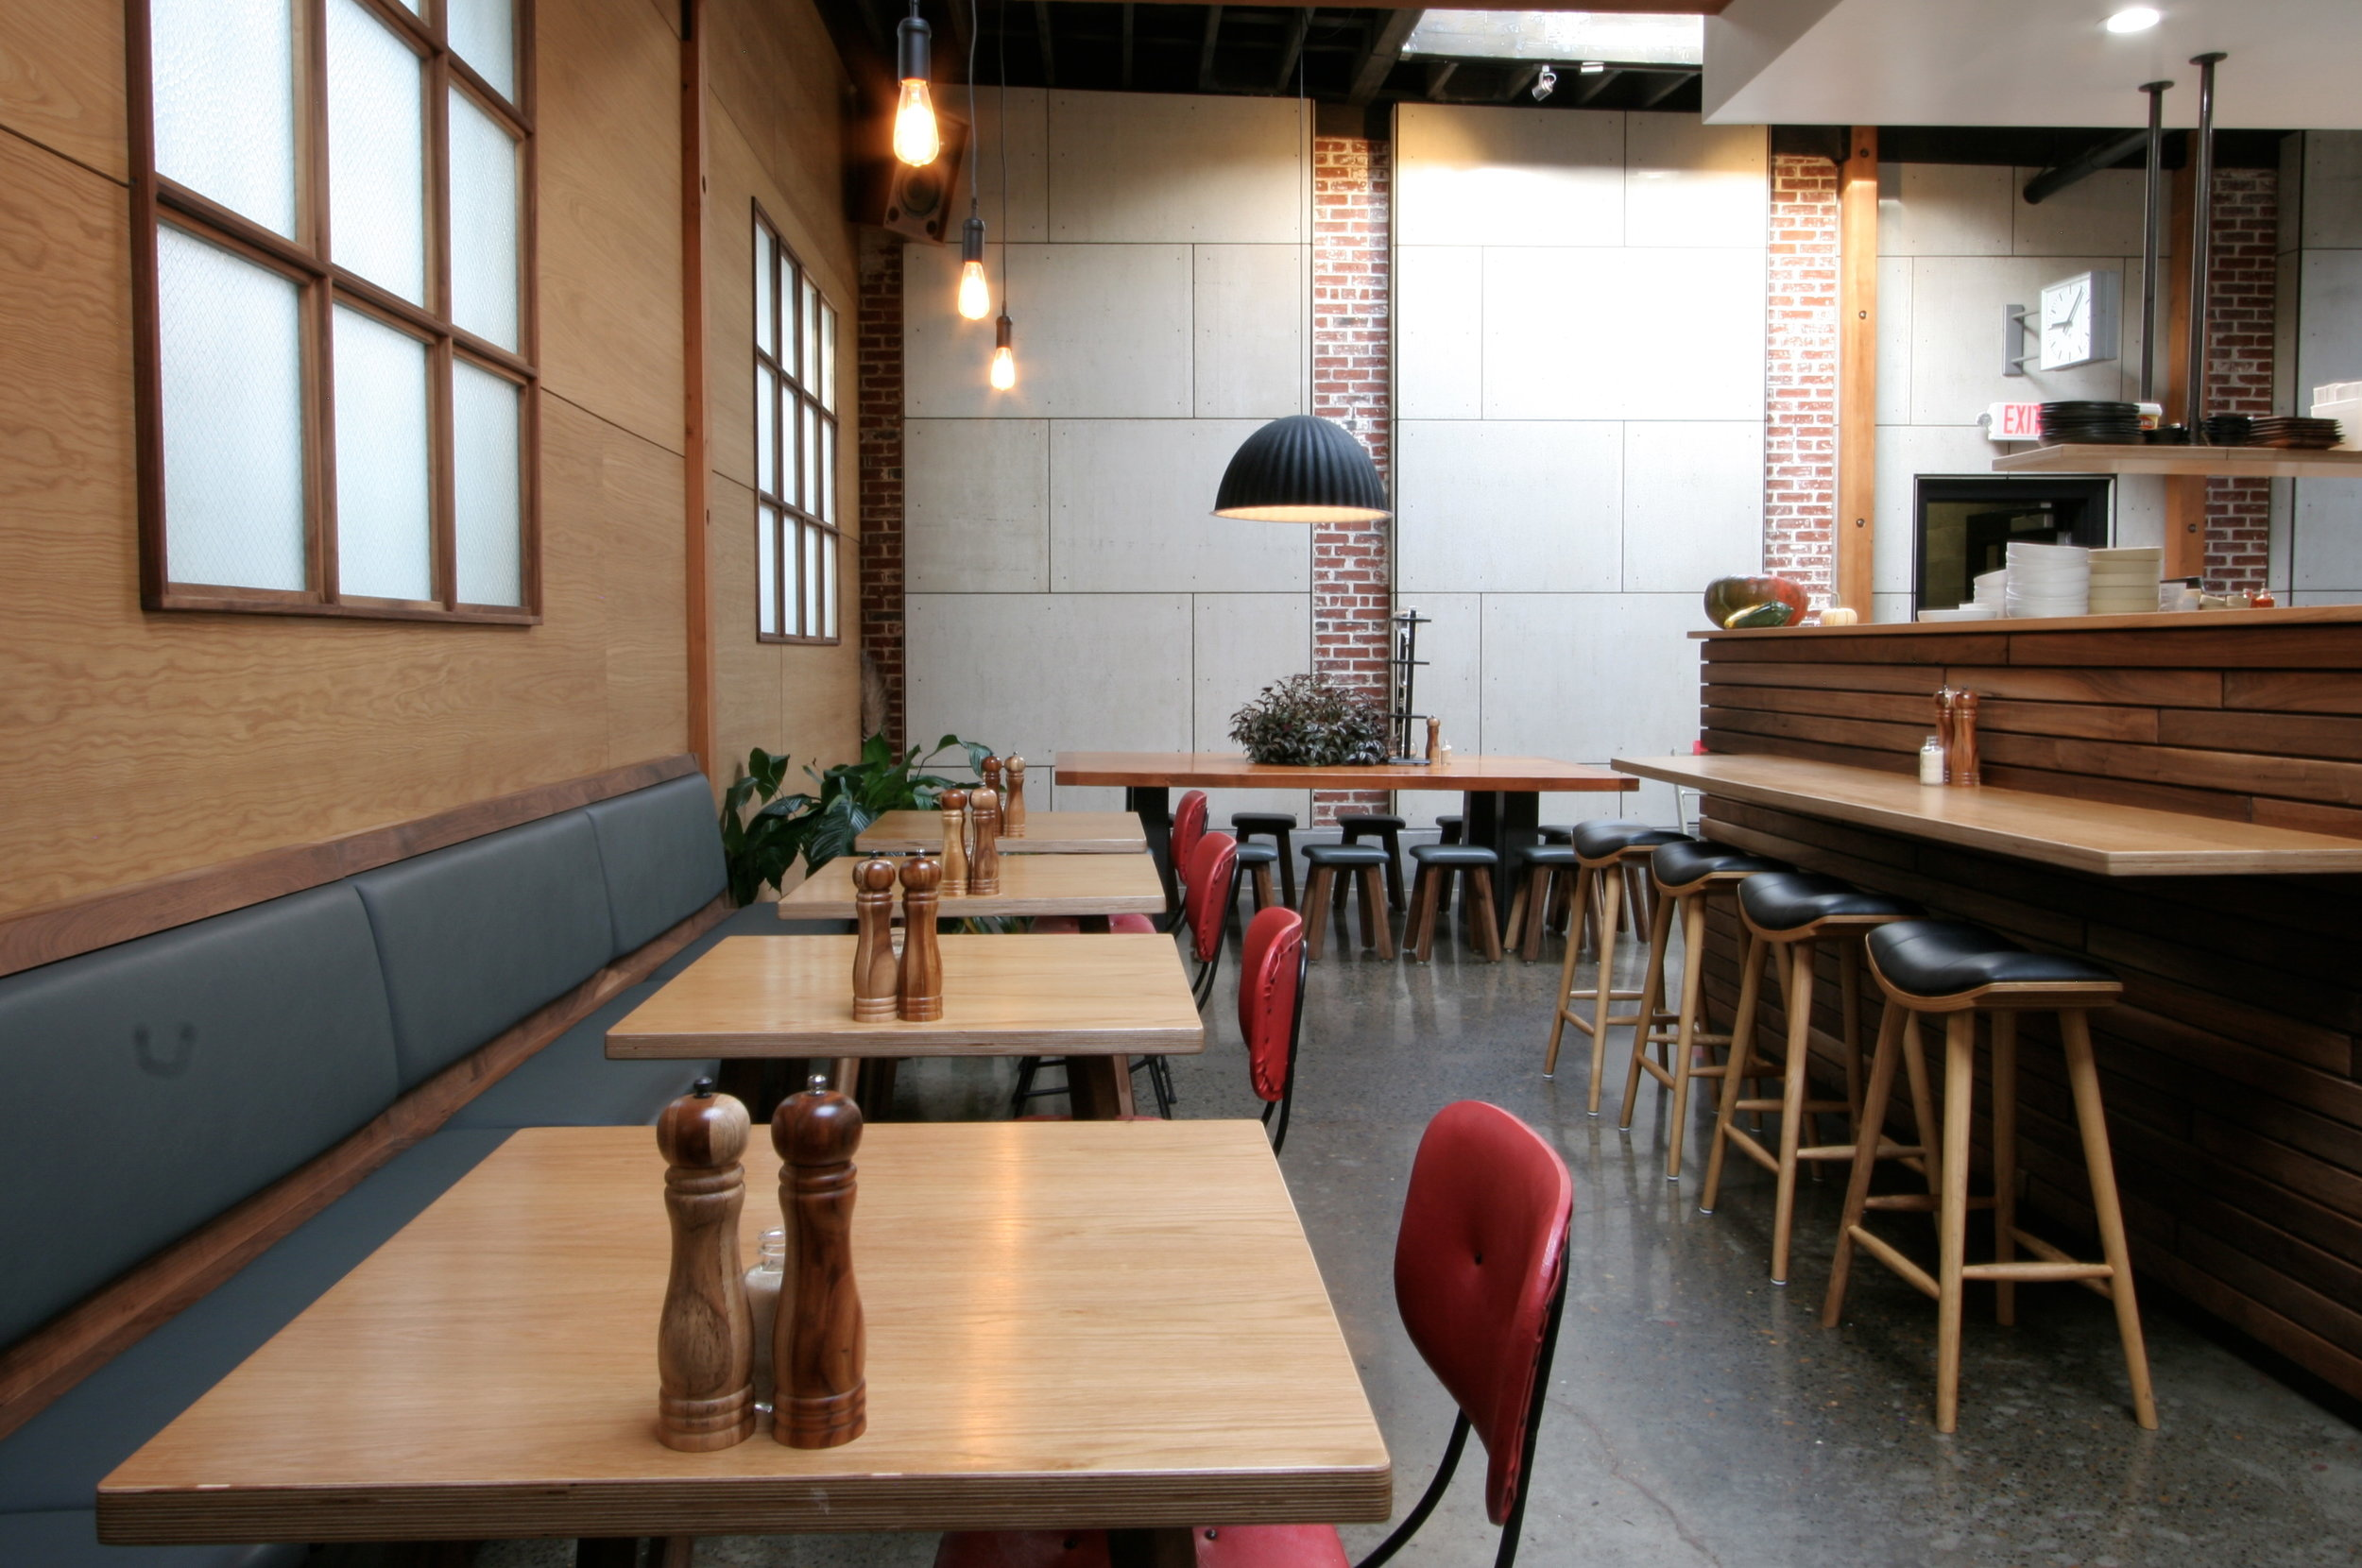 Harka Architecture_Proud Mary Cafe_Restaurant Built-in Seating (2).JPG